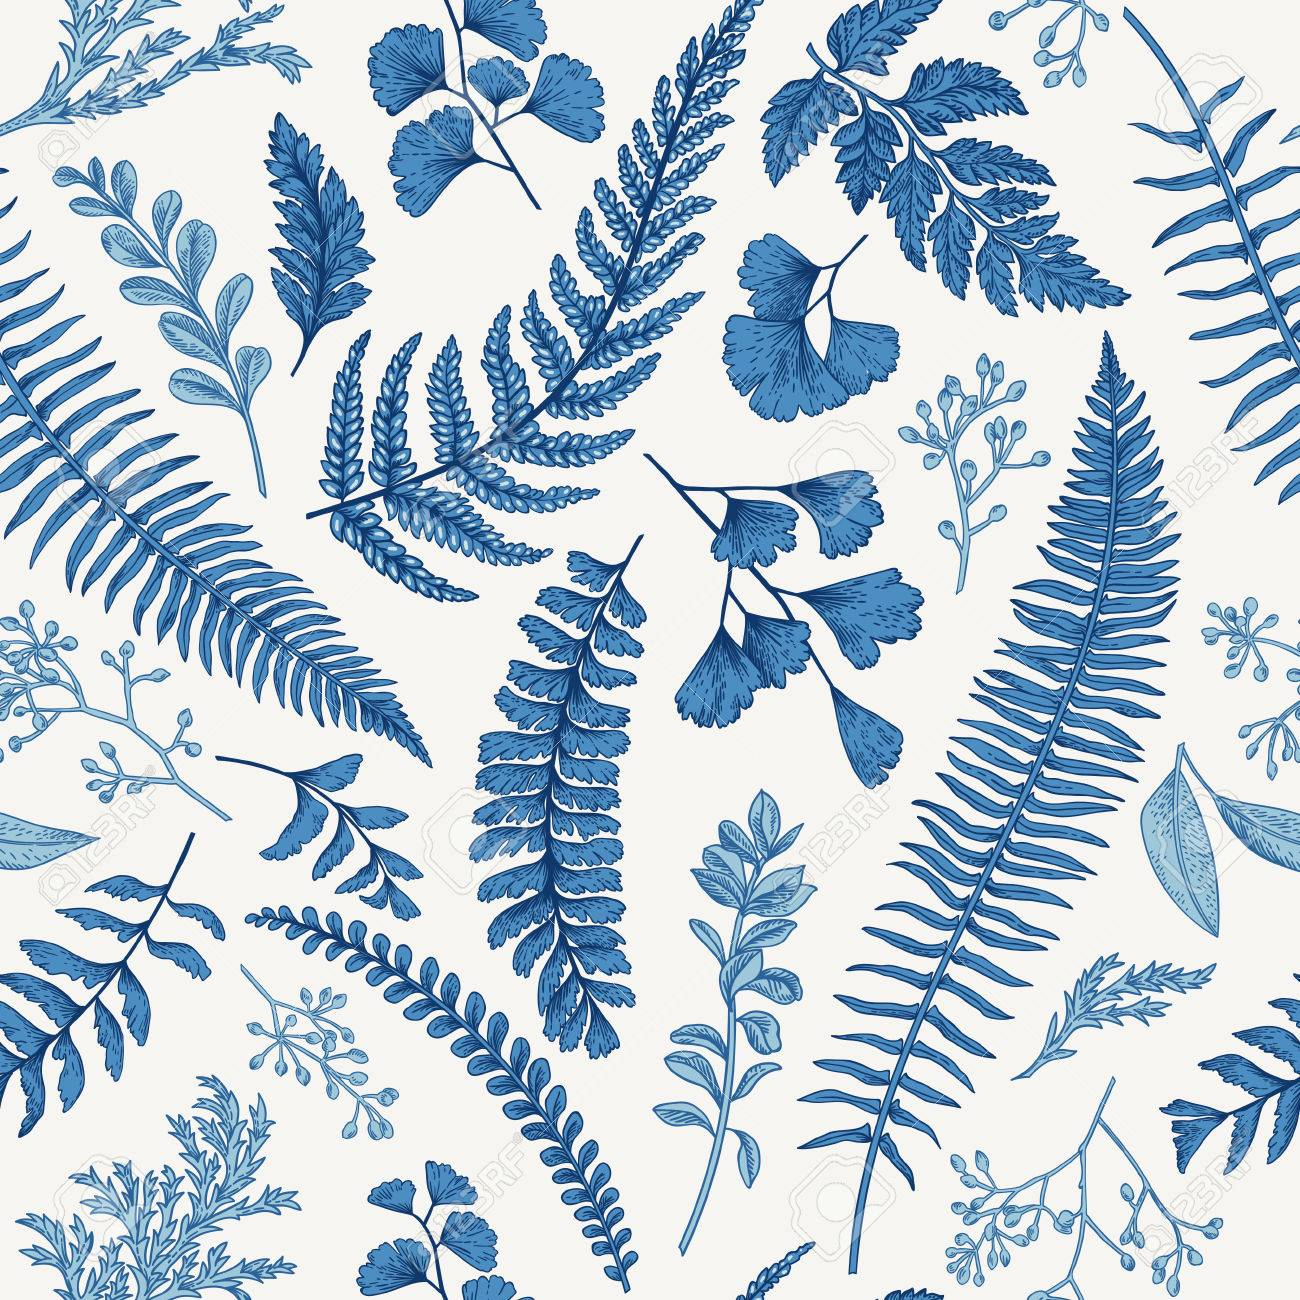 Seamless floral pattern in vintage style. Leaves and herbs in blue. Botanical illustration. Boxwood, seeded eucalyptus, fern, maidenhair. - 63419149